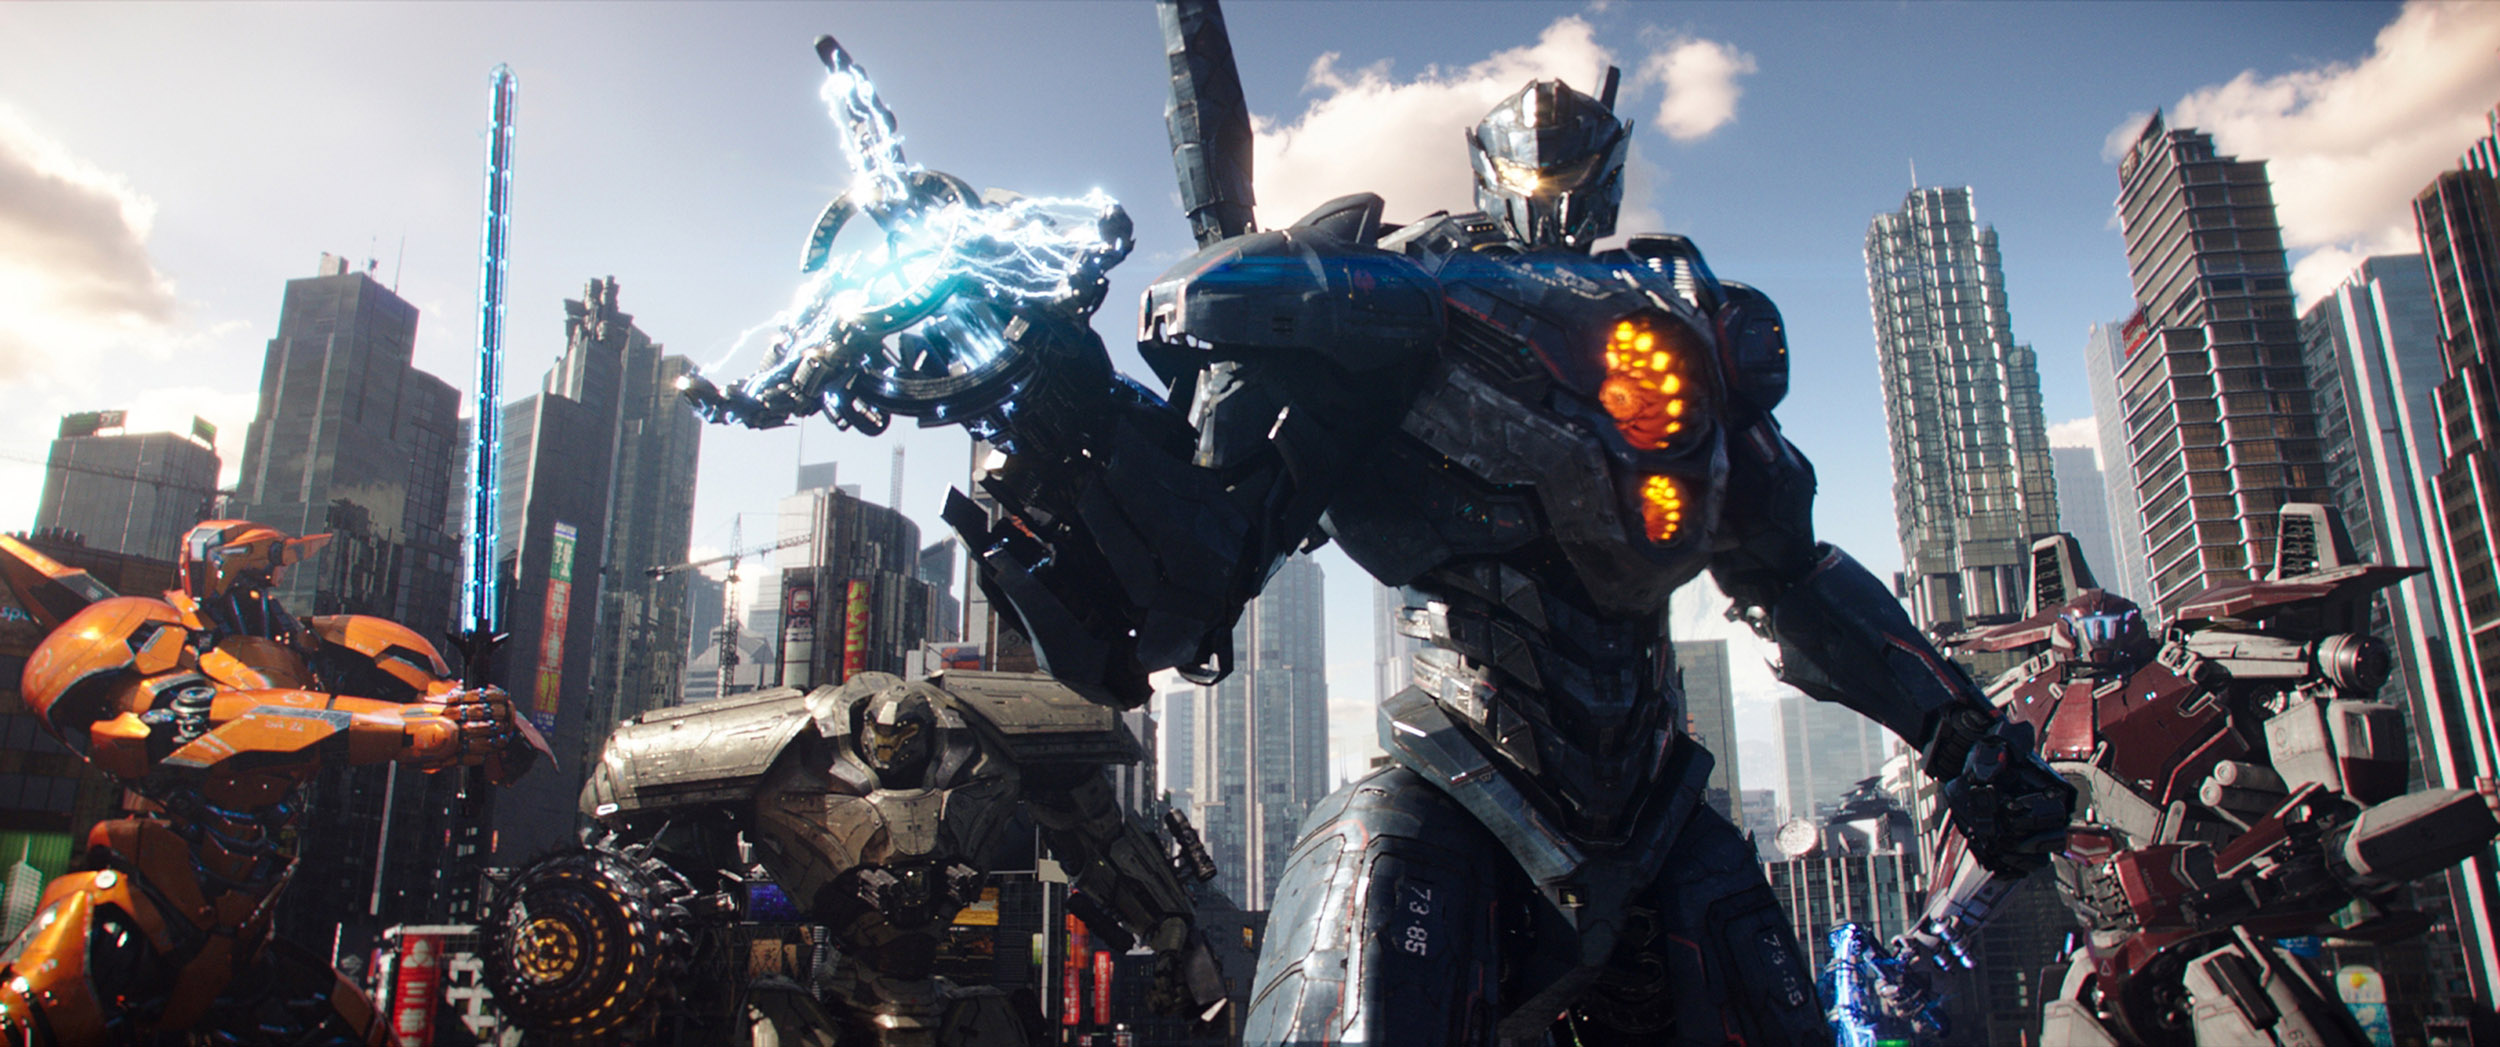 pacific rim insurreccion 2